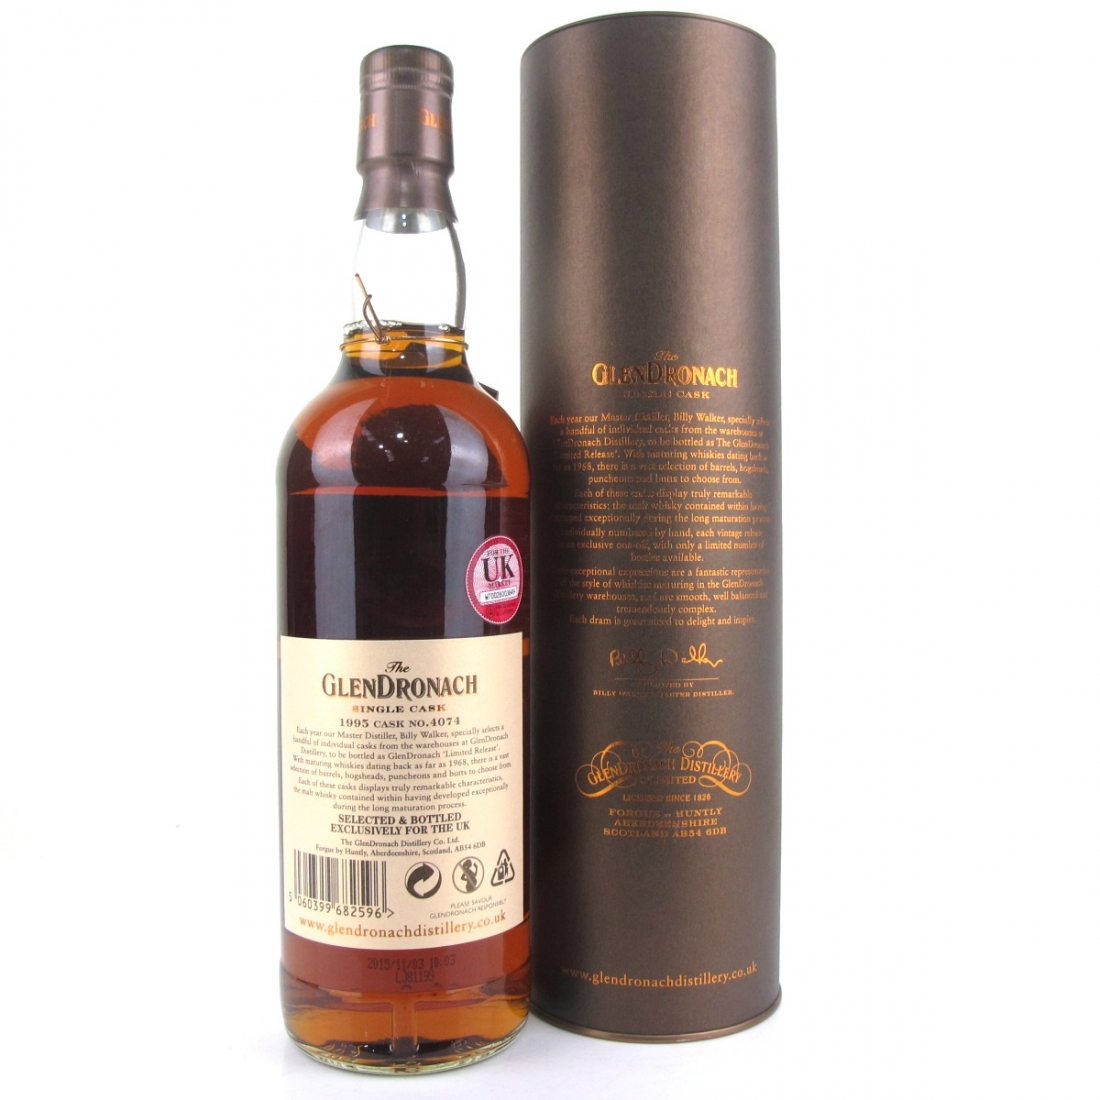 Glendronach 1995 Single Cask 20 Year Old #4074 / UK Exclusive